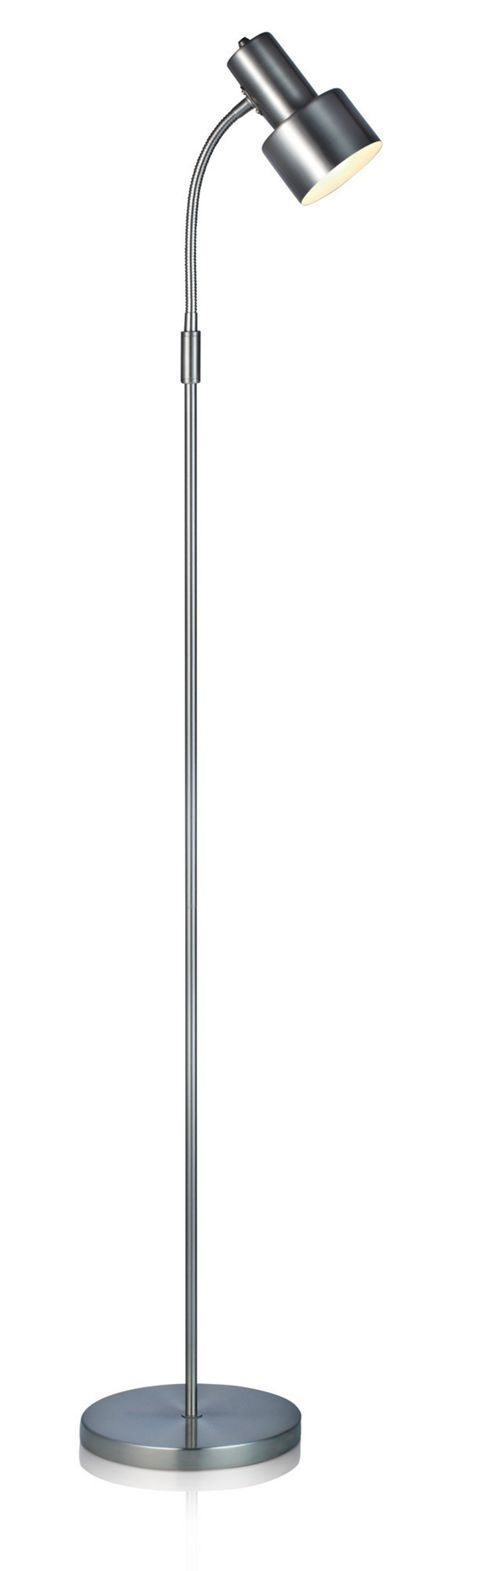 Mark Slojd Glommen 1 Light Floor Lamp - Steel